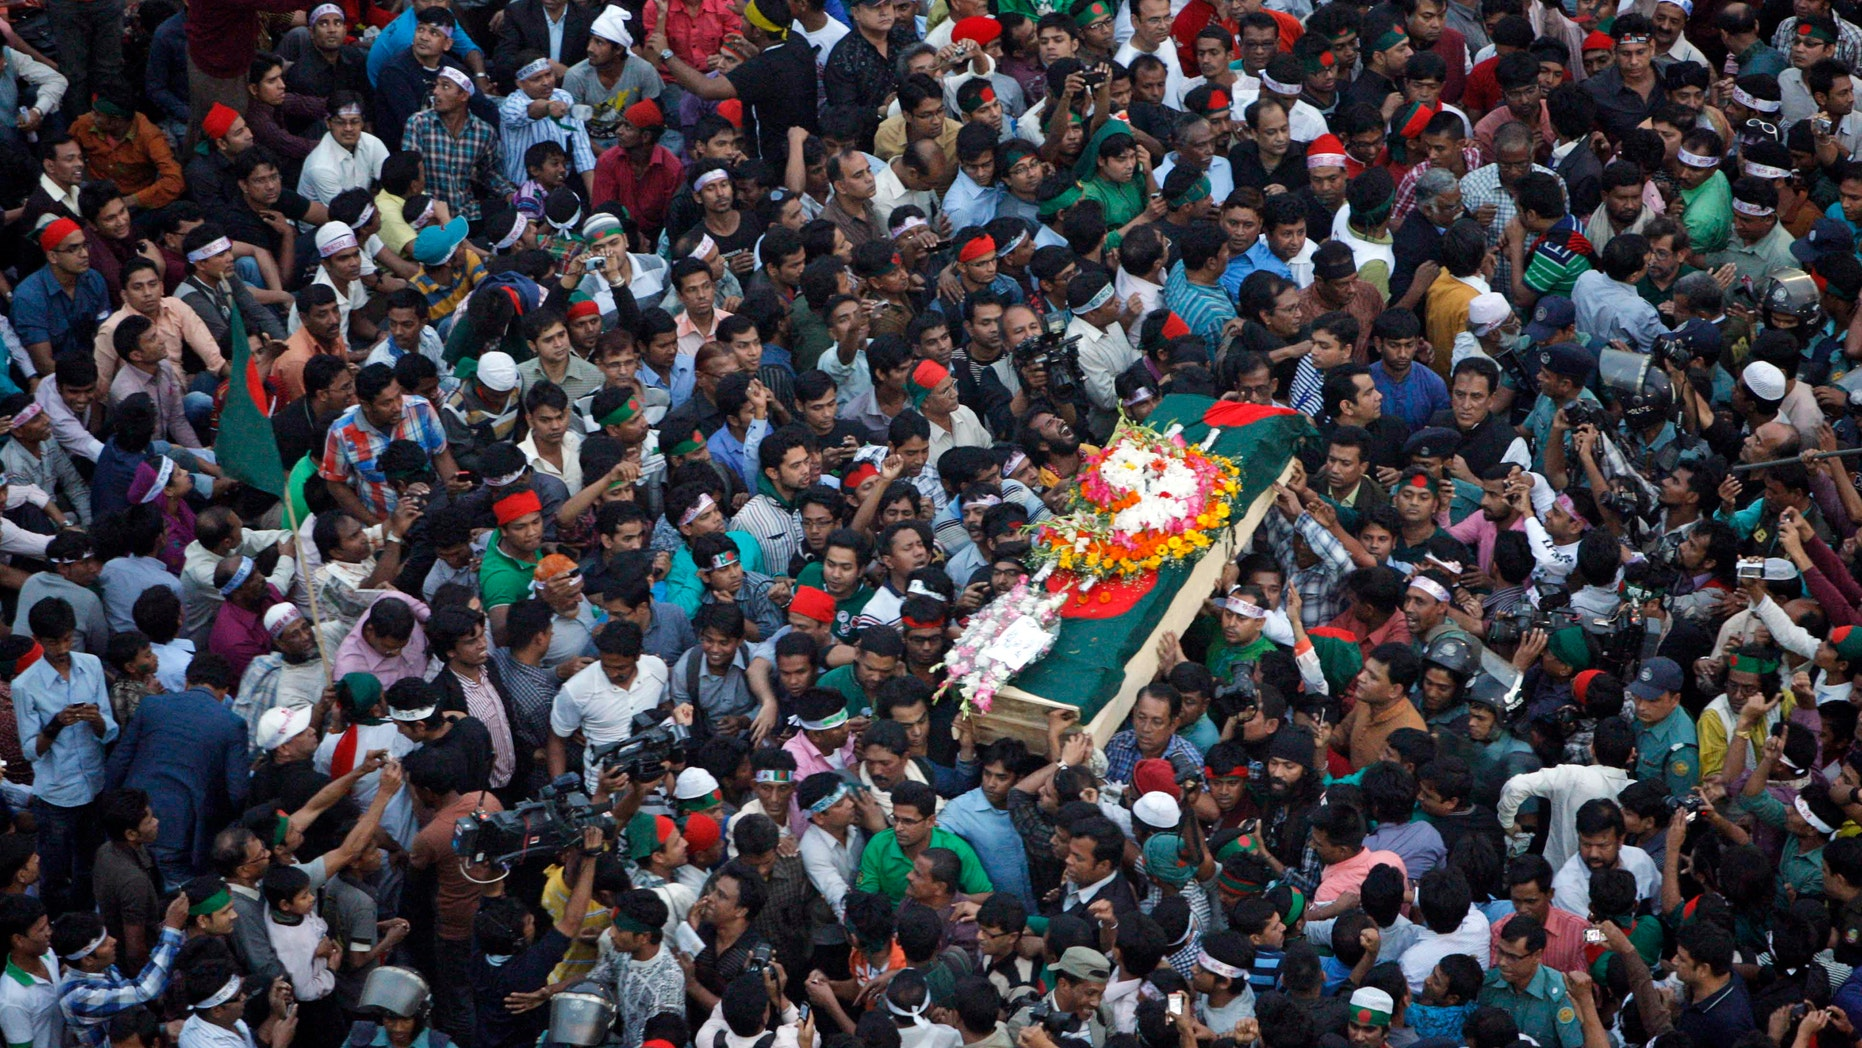 FILE - In this Feb. 16, 2013 file photo, Bangladeshi mourners carry the coffin containing the body of blogger Rajib Haider for funeral in Dhaka, Bangladesh. Haider had been critical of the Islamic group Jamaat-e-Islami, whose leader Abdul Quader Mollah was recently given a life sentence for his role in the killing of 381 civilians during the nation's 1971 war for independence from Pakistan. On Sunday, Feb. 17, 2013, Bangladesh parliament has amended the country's war crimes law that will allow the prosecution to appeal the life imprisonment of an opposition leader which it says has been lenient. (AP Photo/Pavel Rahman, File)